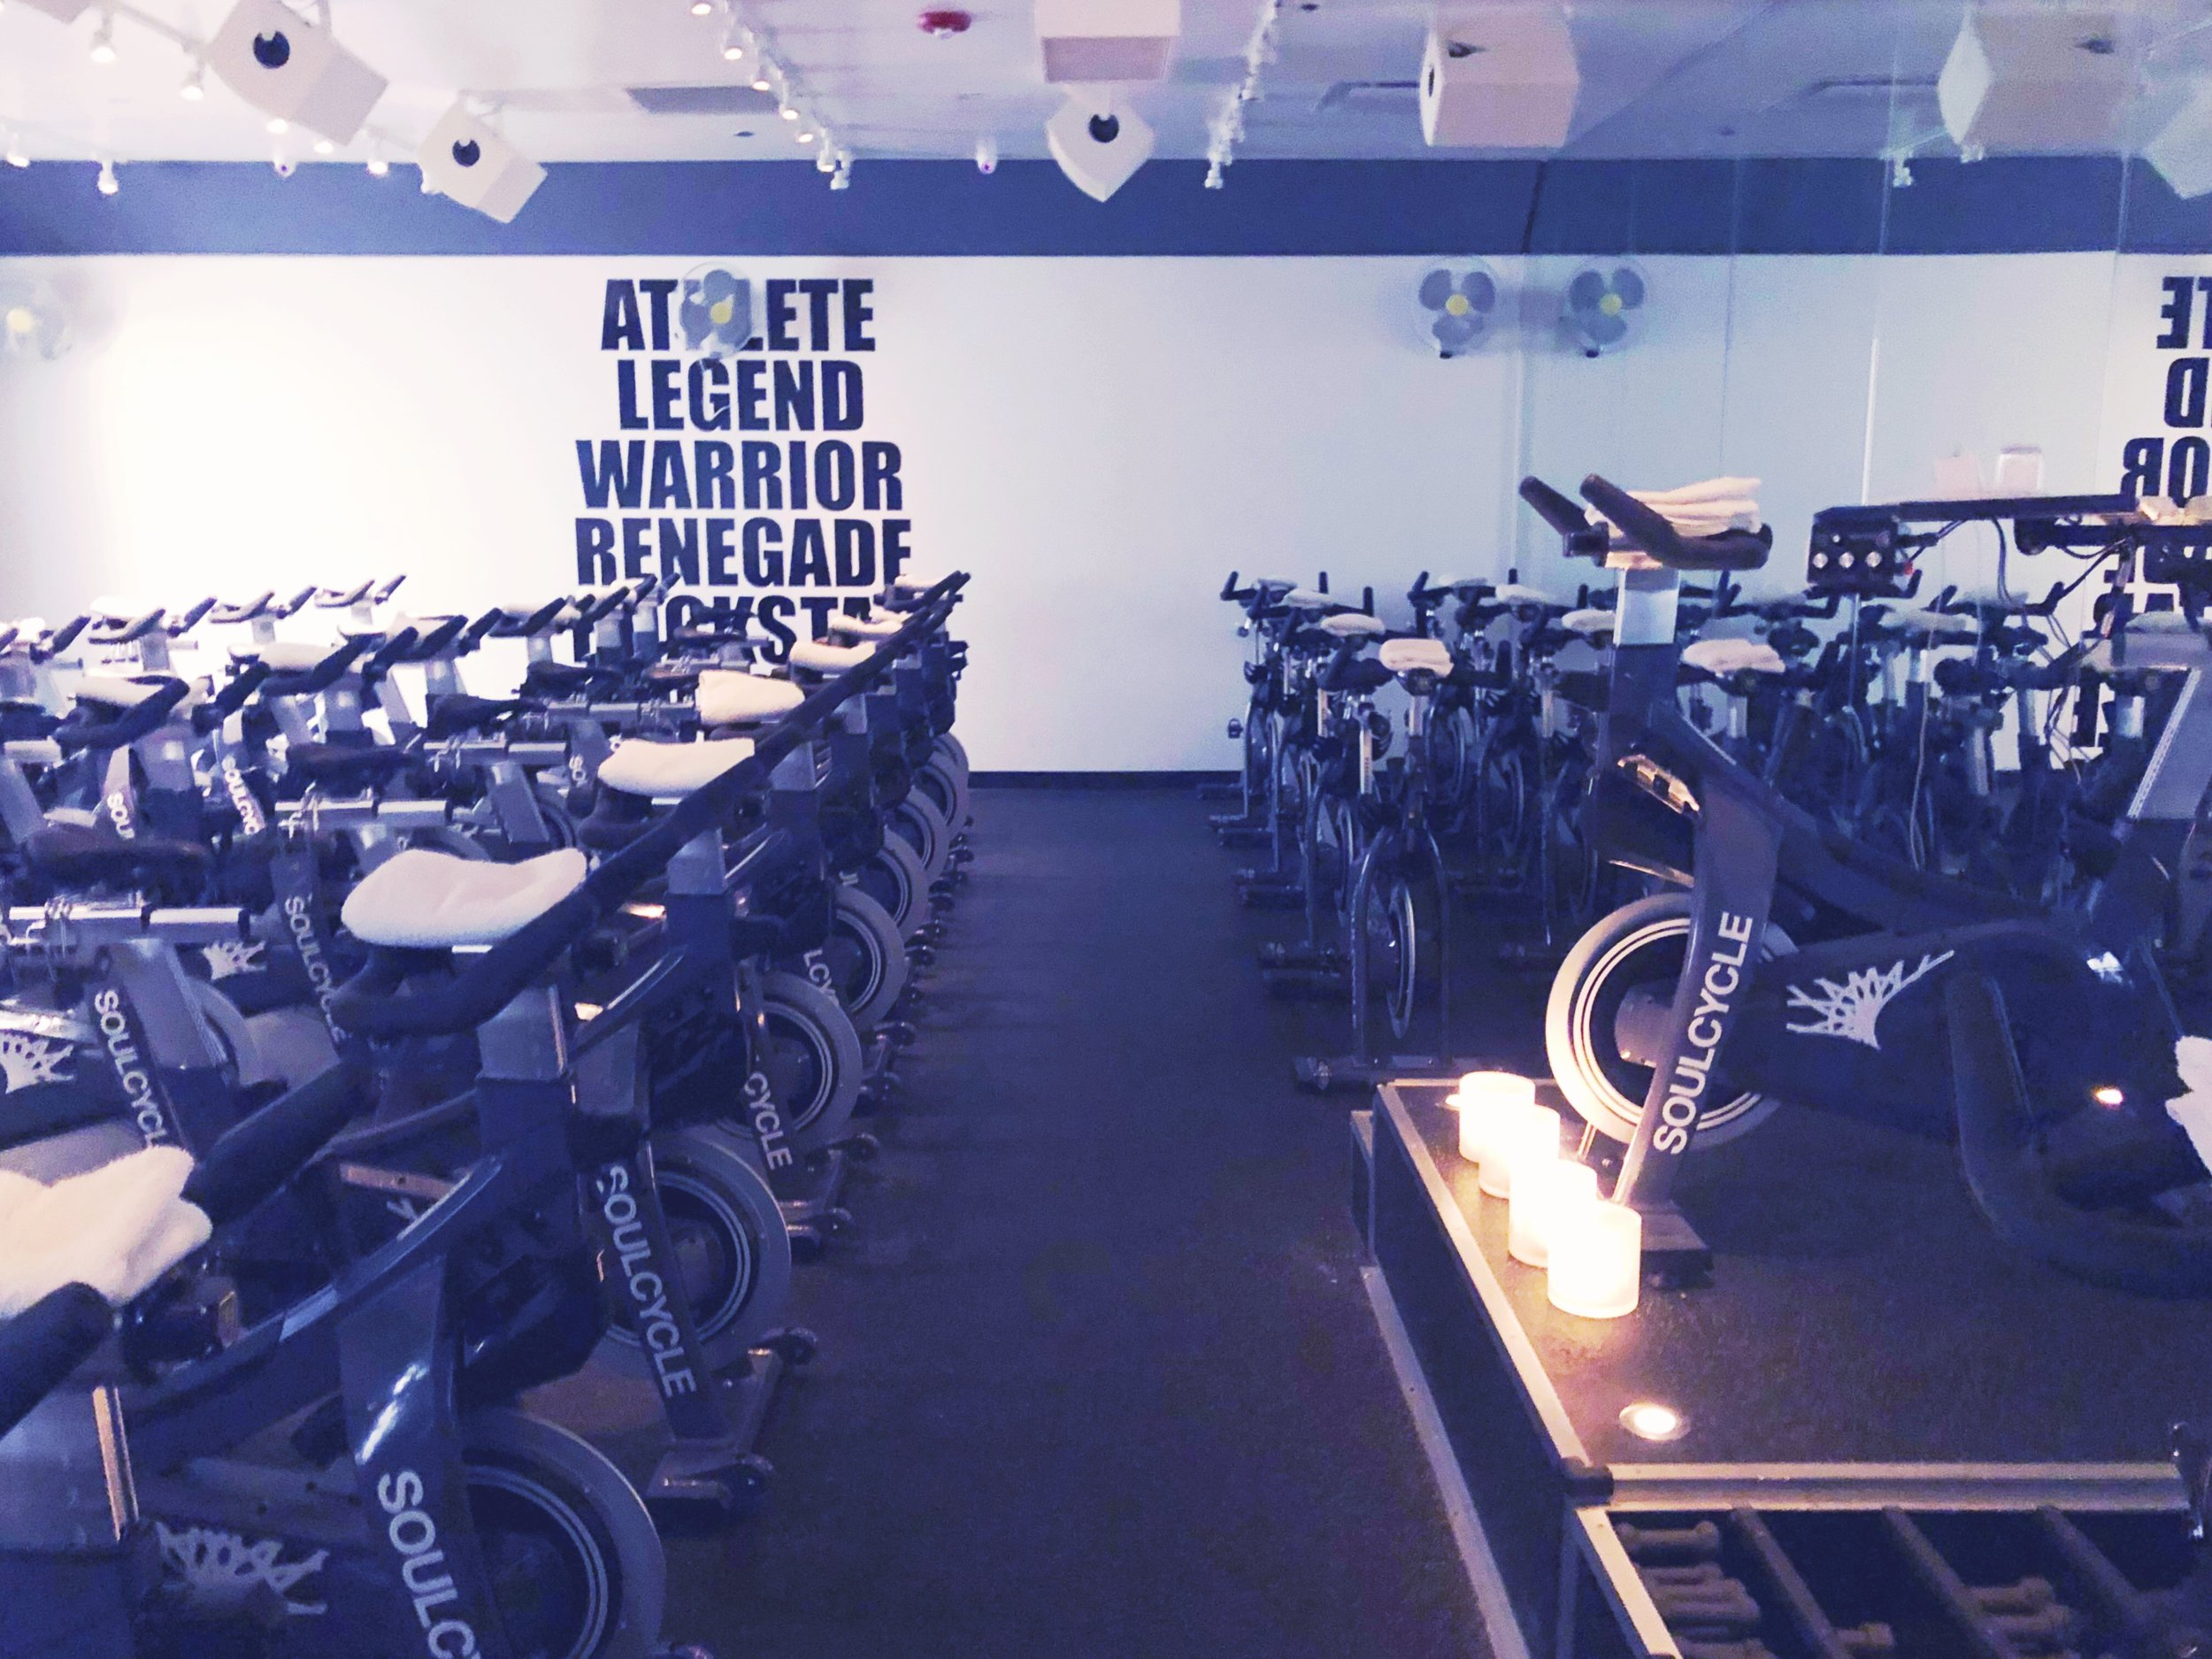 Soulcycle spin studio in Chicago.